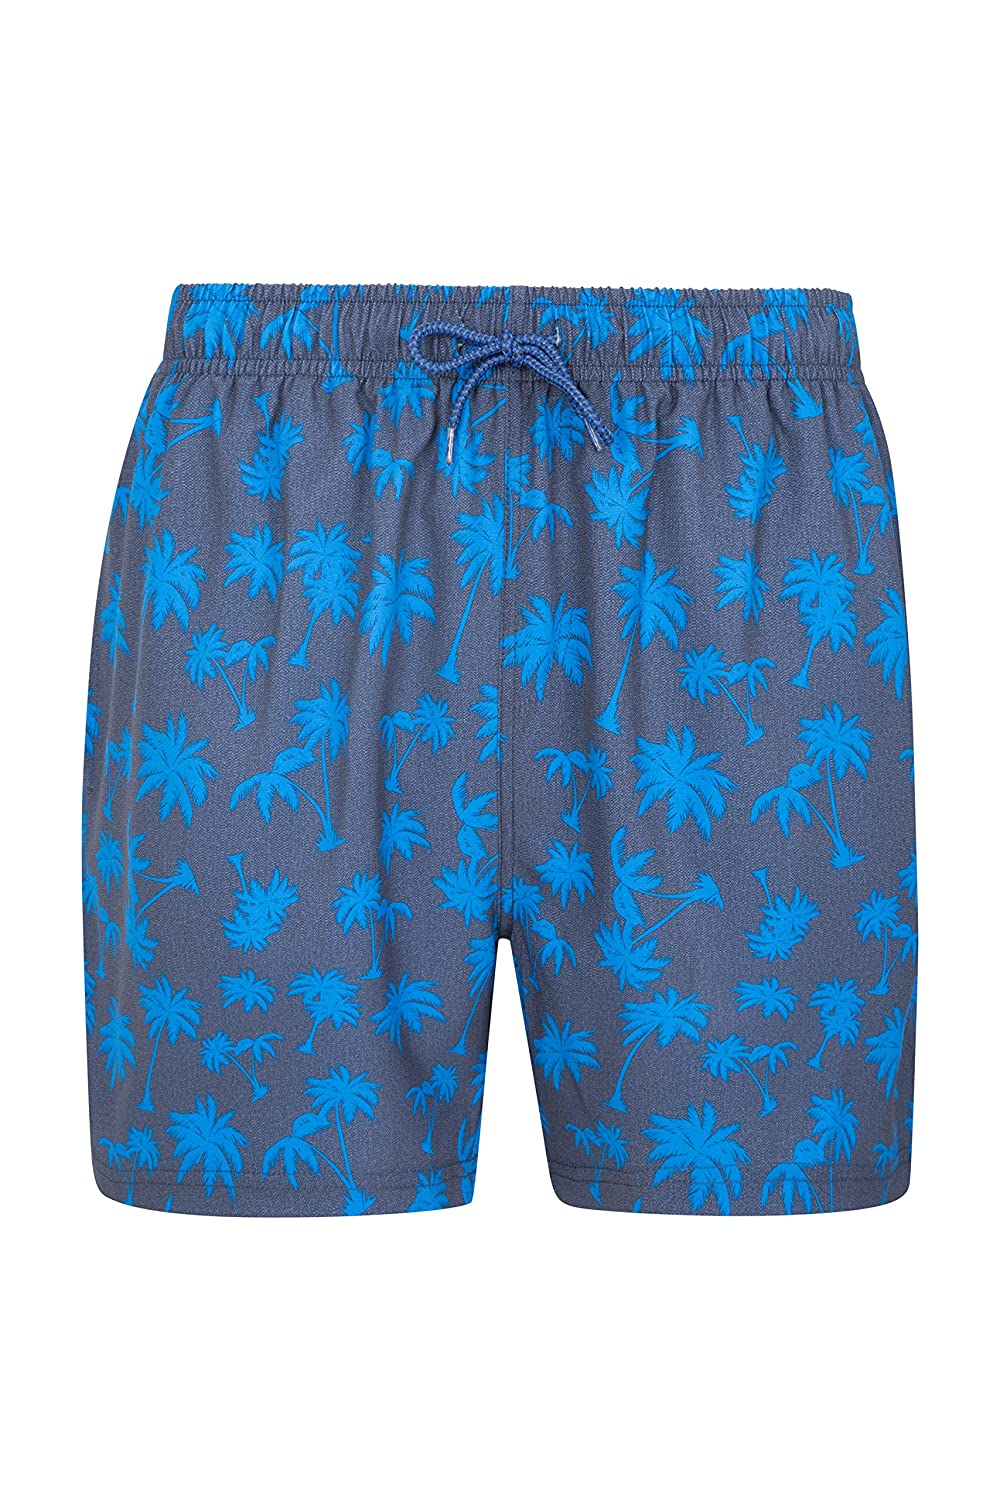 Mountain Warehouse Aruba Mens Swim Shorts -Printed Summer Beach Trunks Green X-Small 025832025002